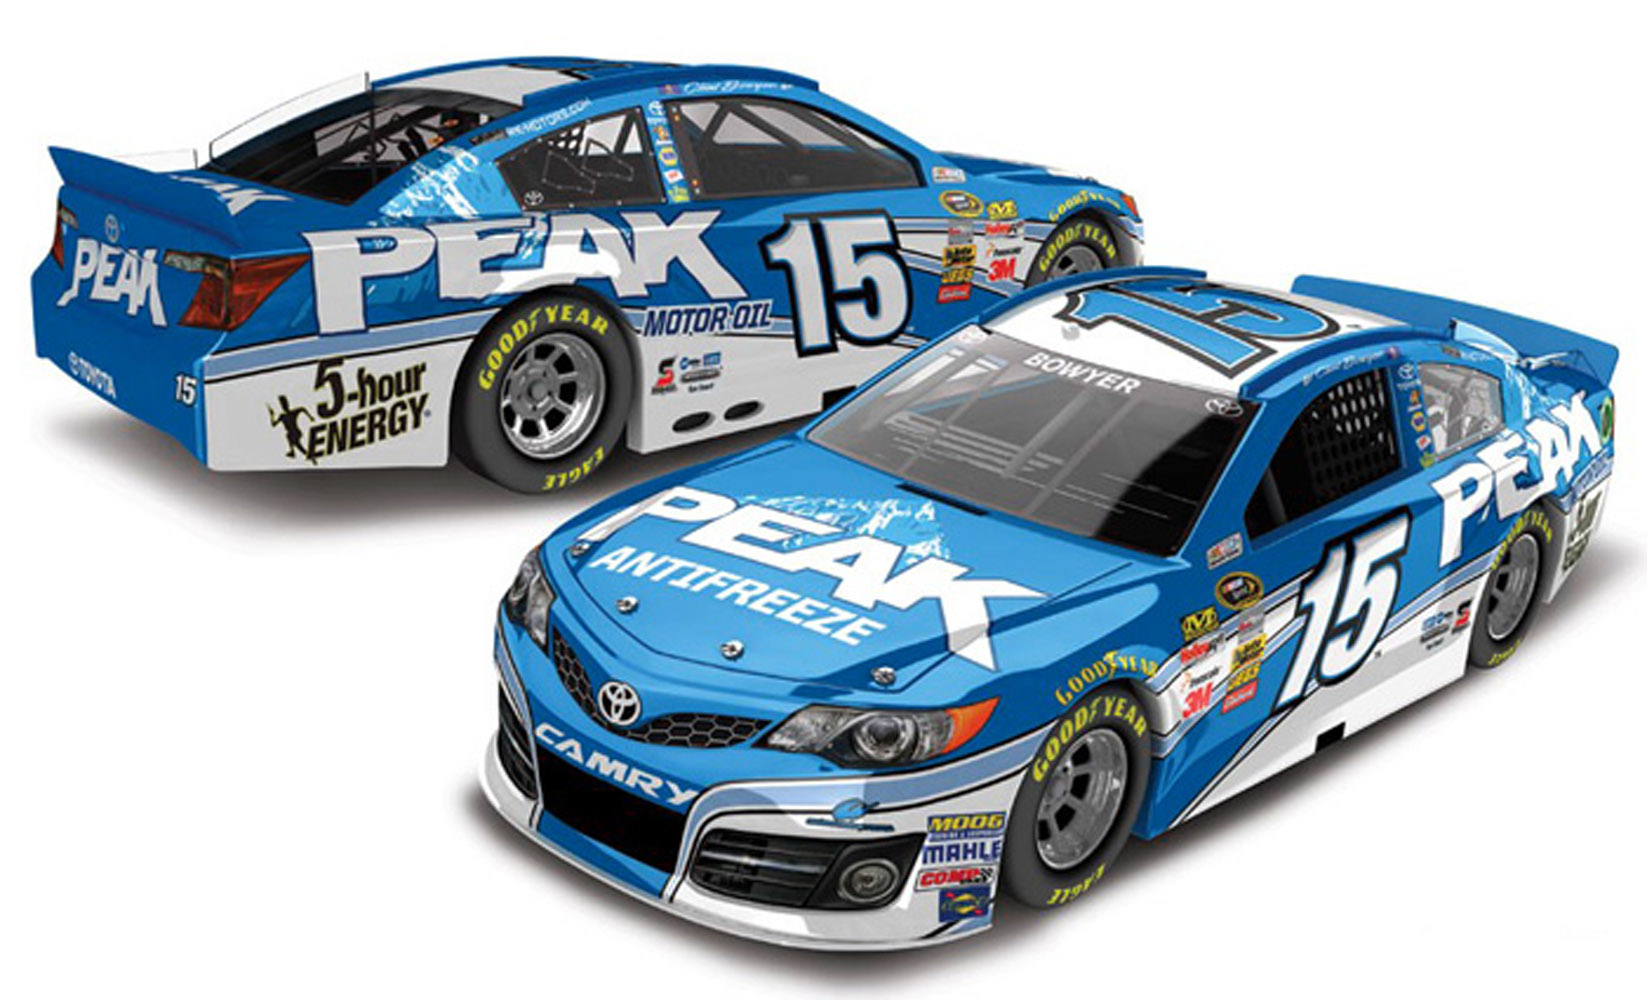 2013 Clint Bowyer #15 Peak 1:24 Diecast Car